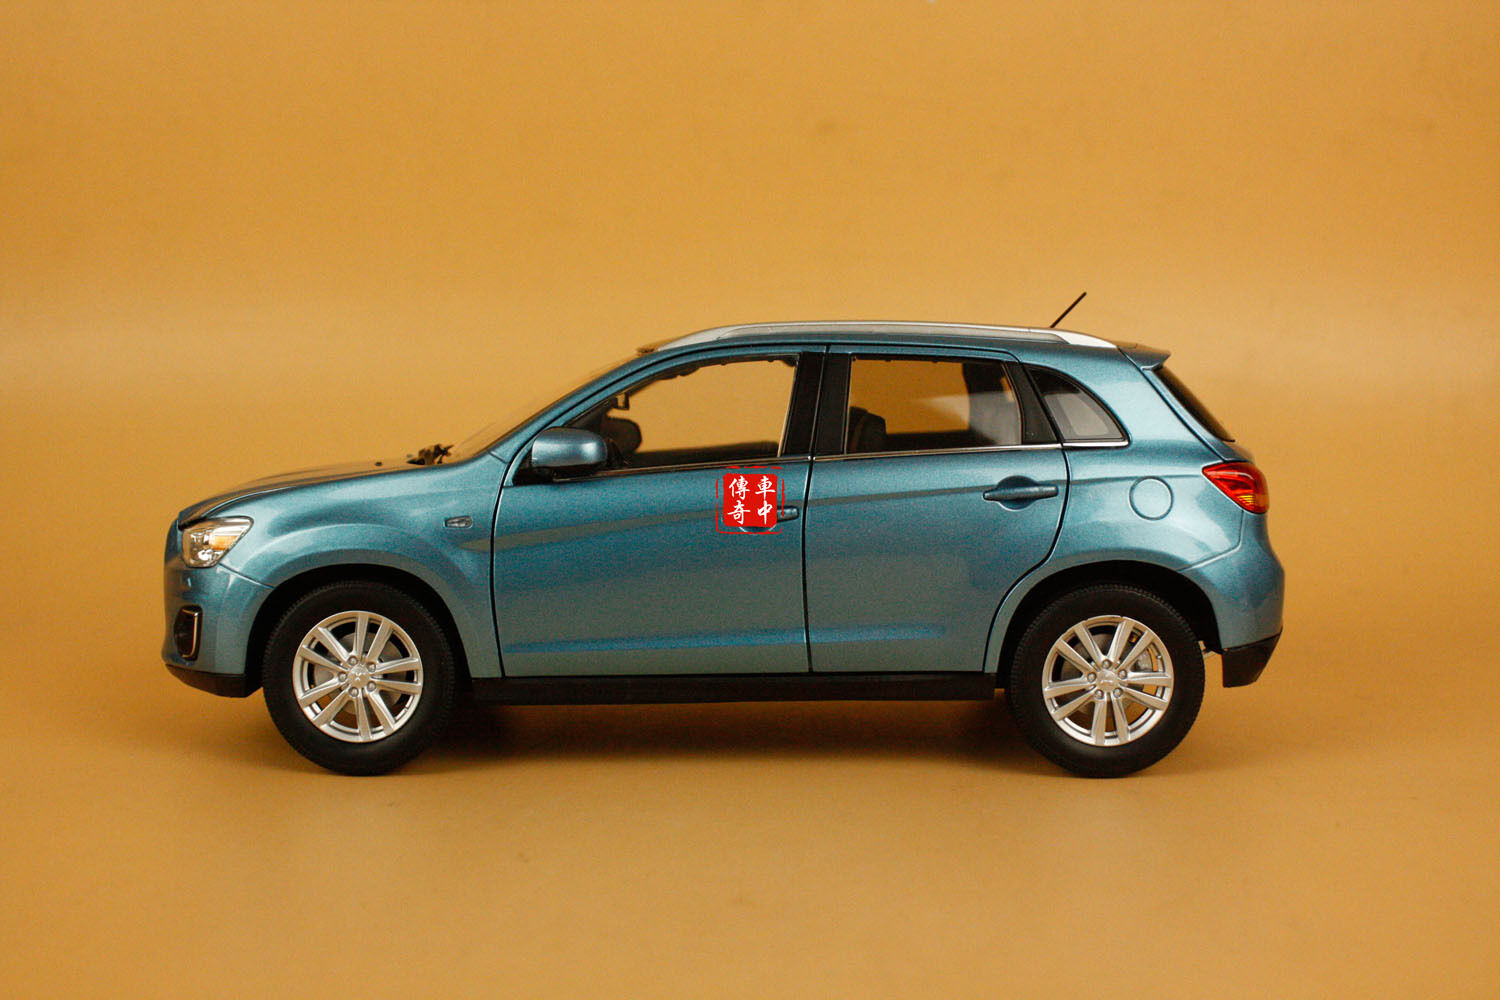 1 18 new mitsubishi asx suv diecast model blue color ebay. Black Bedroom Furniture Sets. Home Design Ideas